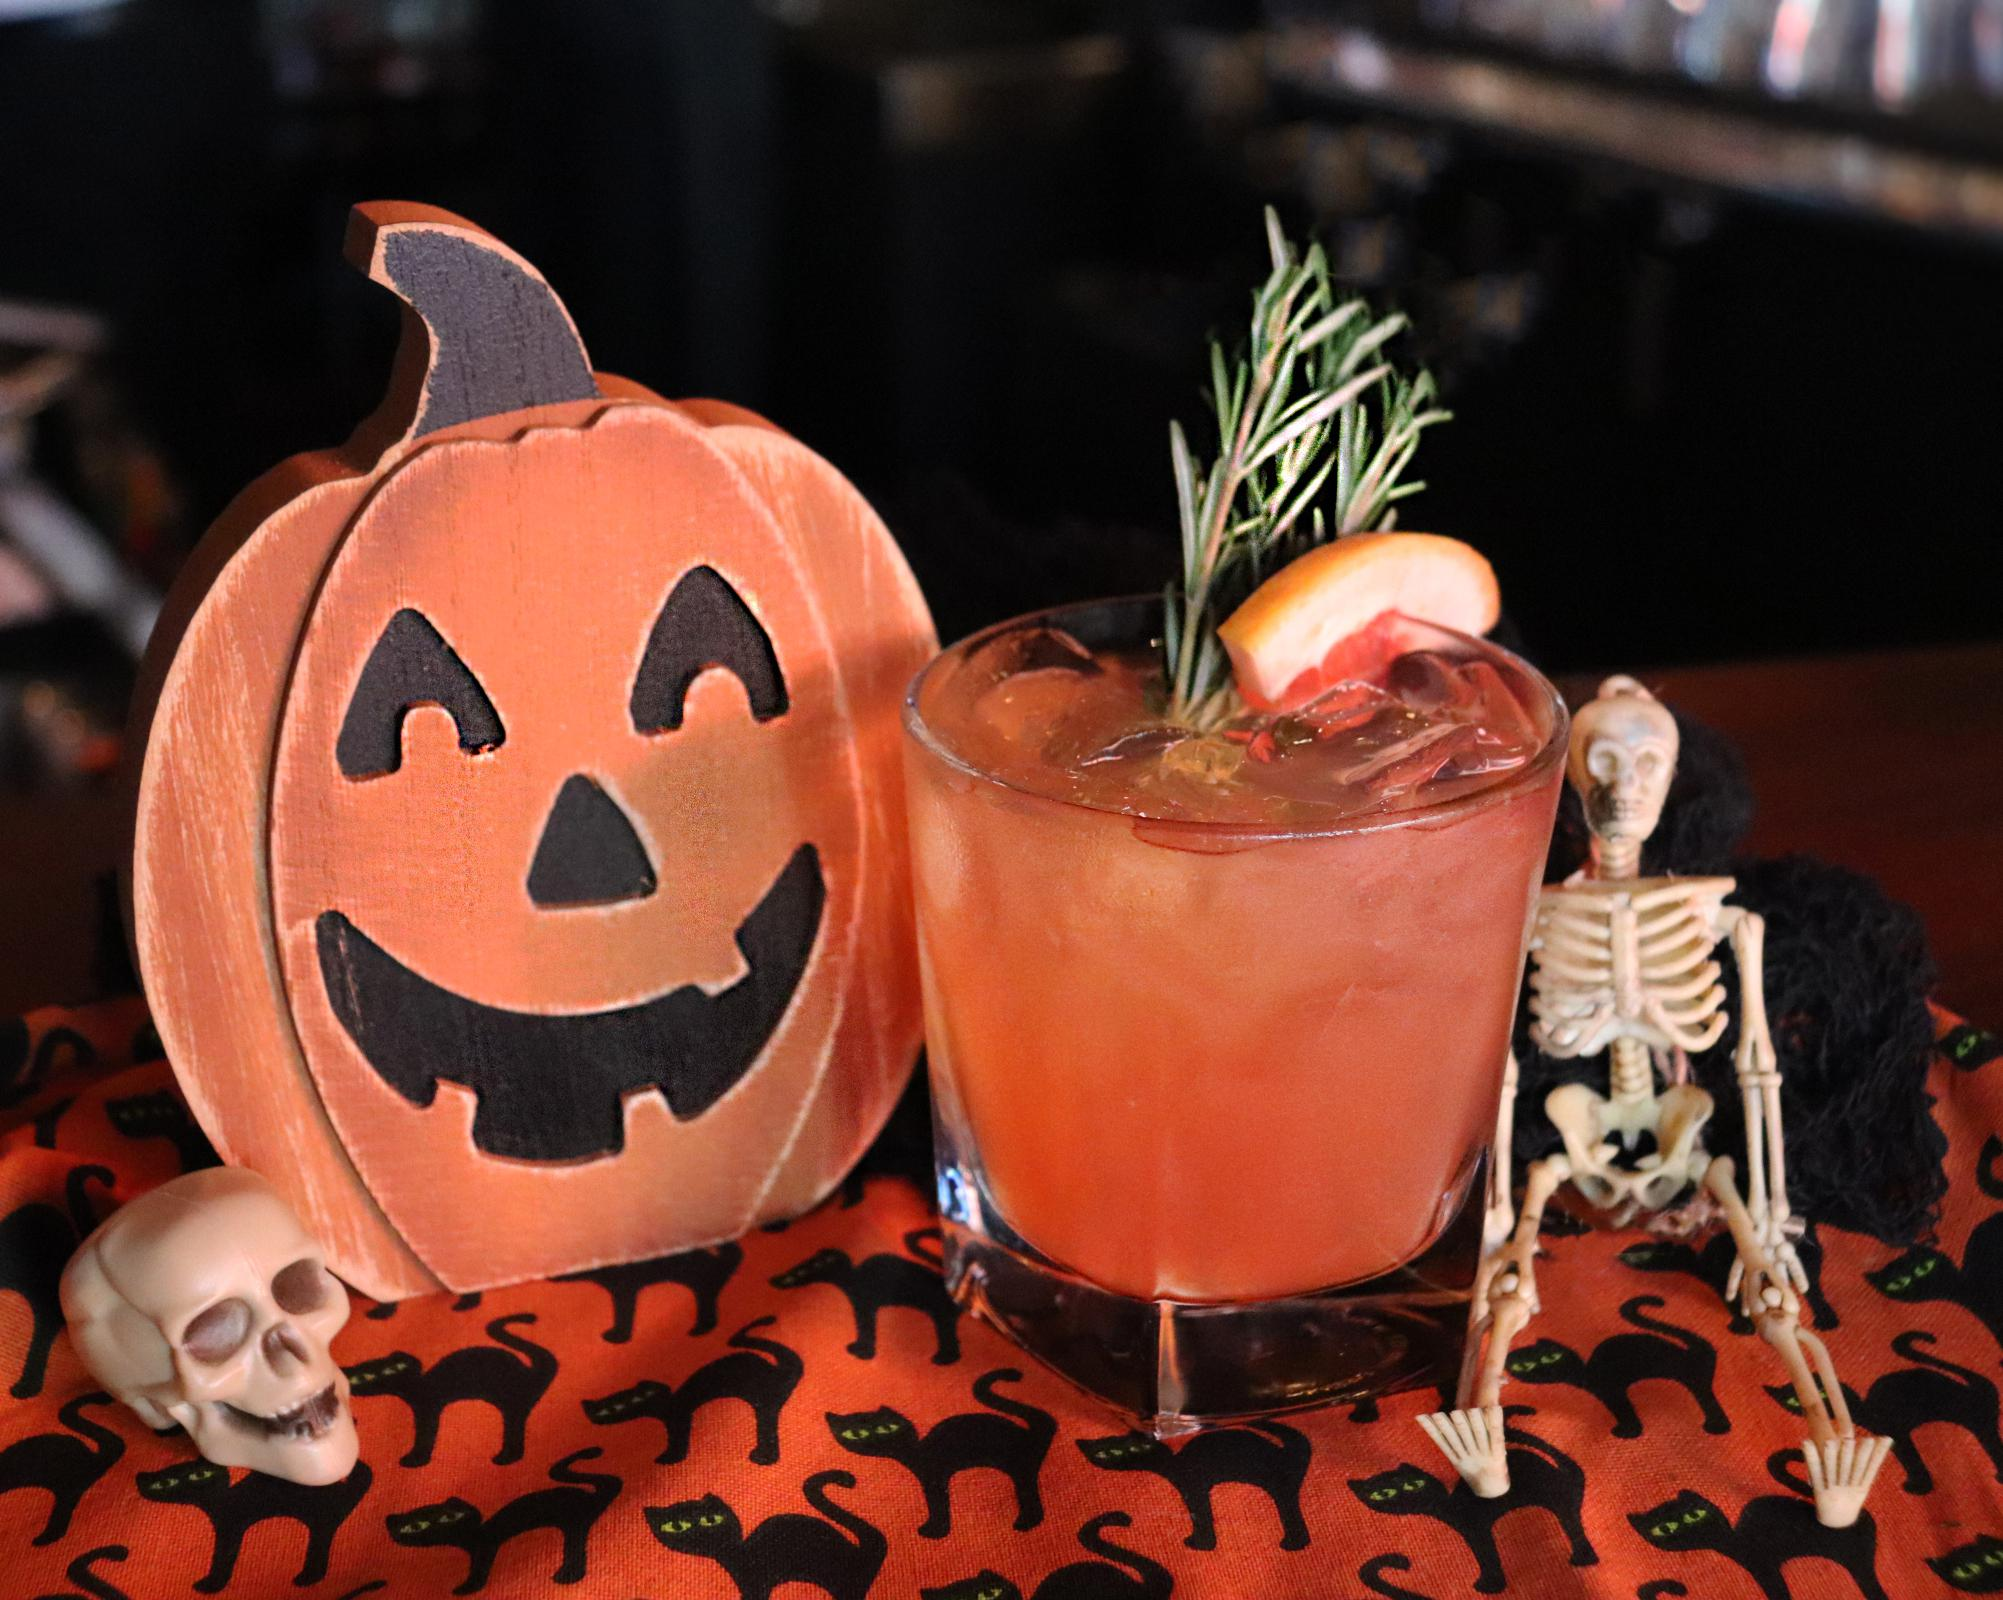 Boo! This Halloween cocktail is for you